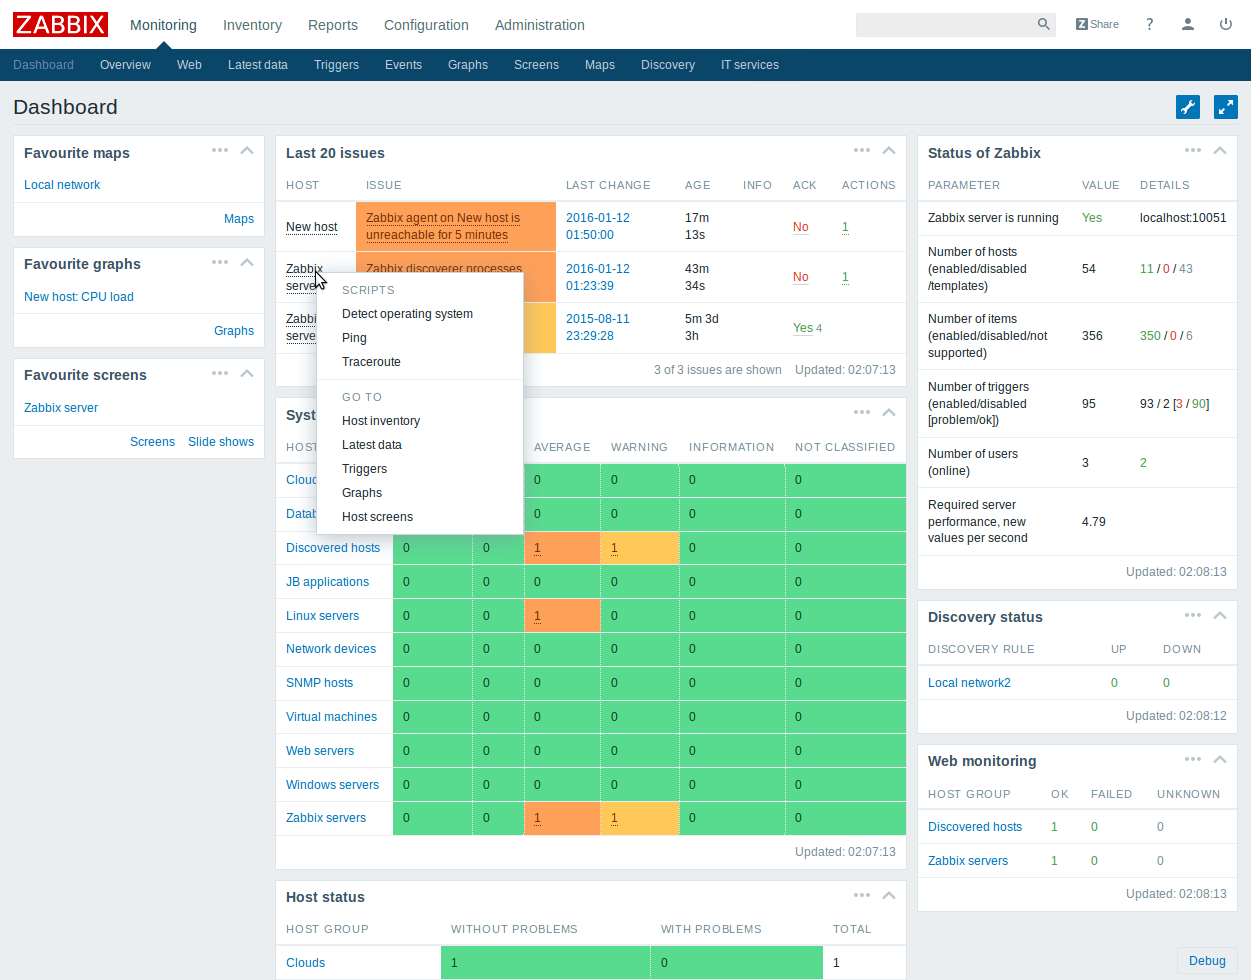 zabbix web interface